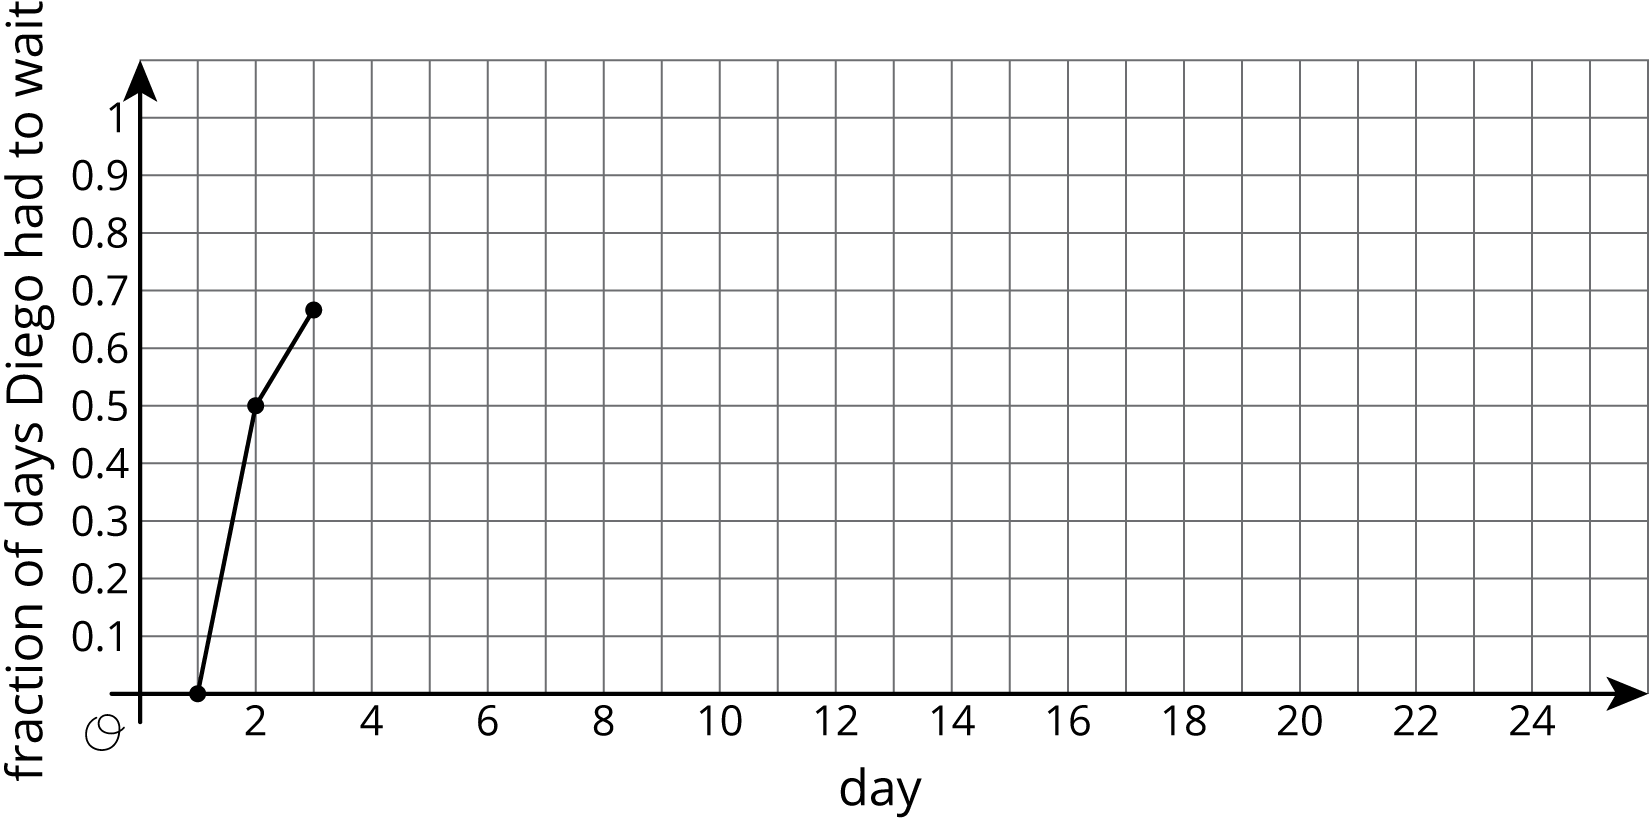 "A graph of two connected line segments on a coordinate grid with the origin marked ""O."" The horizontal axis is labeled ""day"", with the numbers 0 through 24, in increments of 2, indicated. There are vertical grid lines midway between. The vertical axis is labeled ""fraction of days Diego had to wait"" with the numbers 0 point 1 through 1, in increments of 0 point 1, indicated.  The first line segment begins at the point with coordinates 1 comma 0 and moves upward and to the right, ending at the point with coordinates 2 comma 0 point 5. The second line segment begins where the first line ends, and moves slightly upward and to the right, ending at the point with coordinates 3 comma 0 point 6 7."